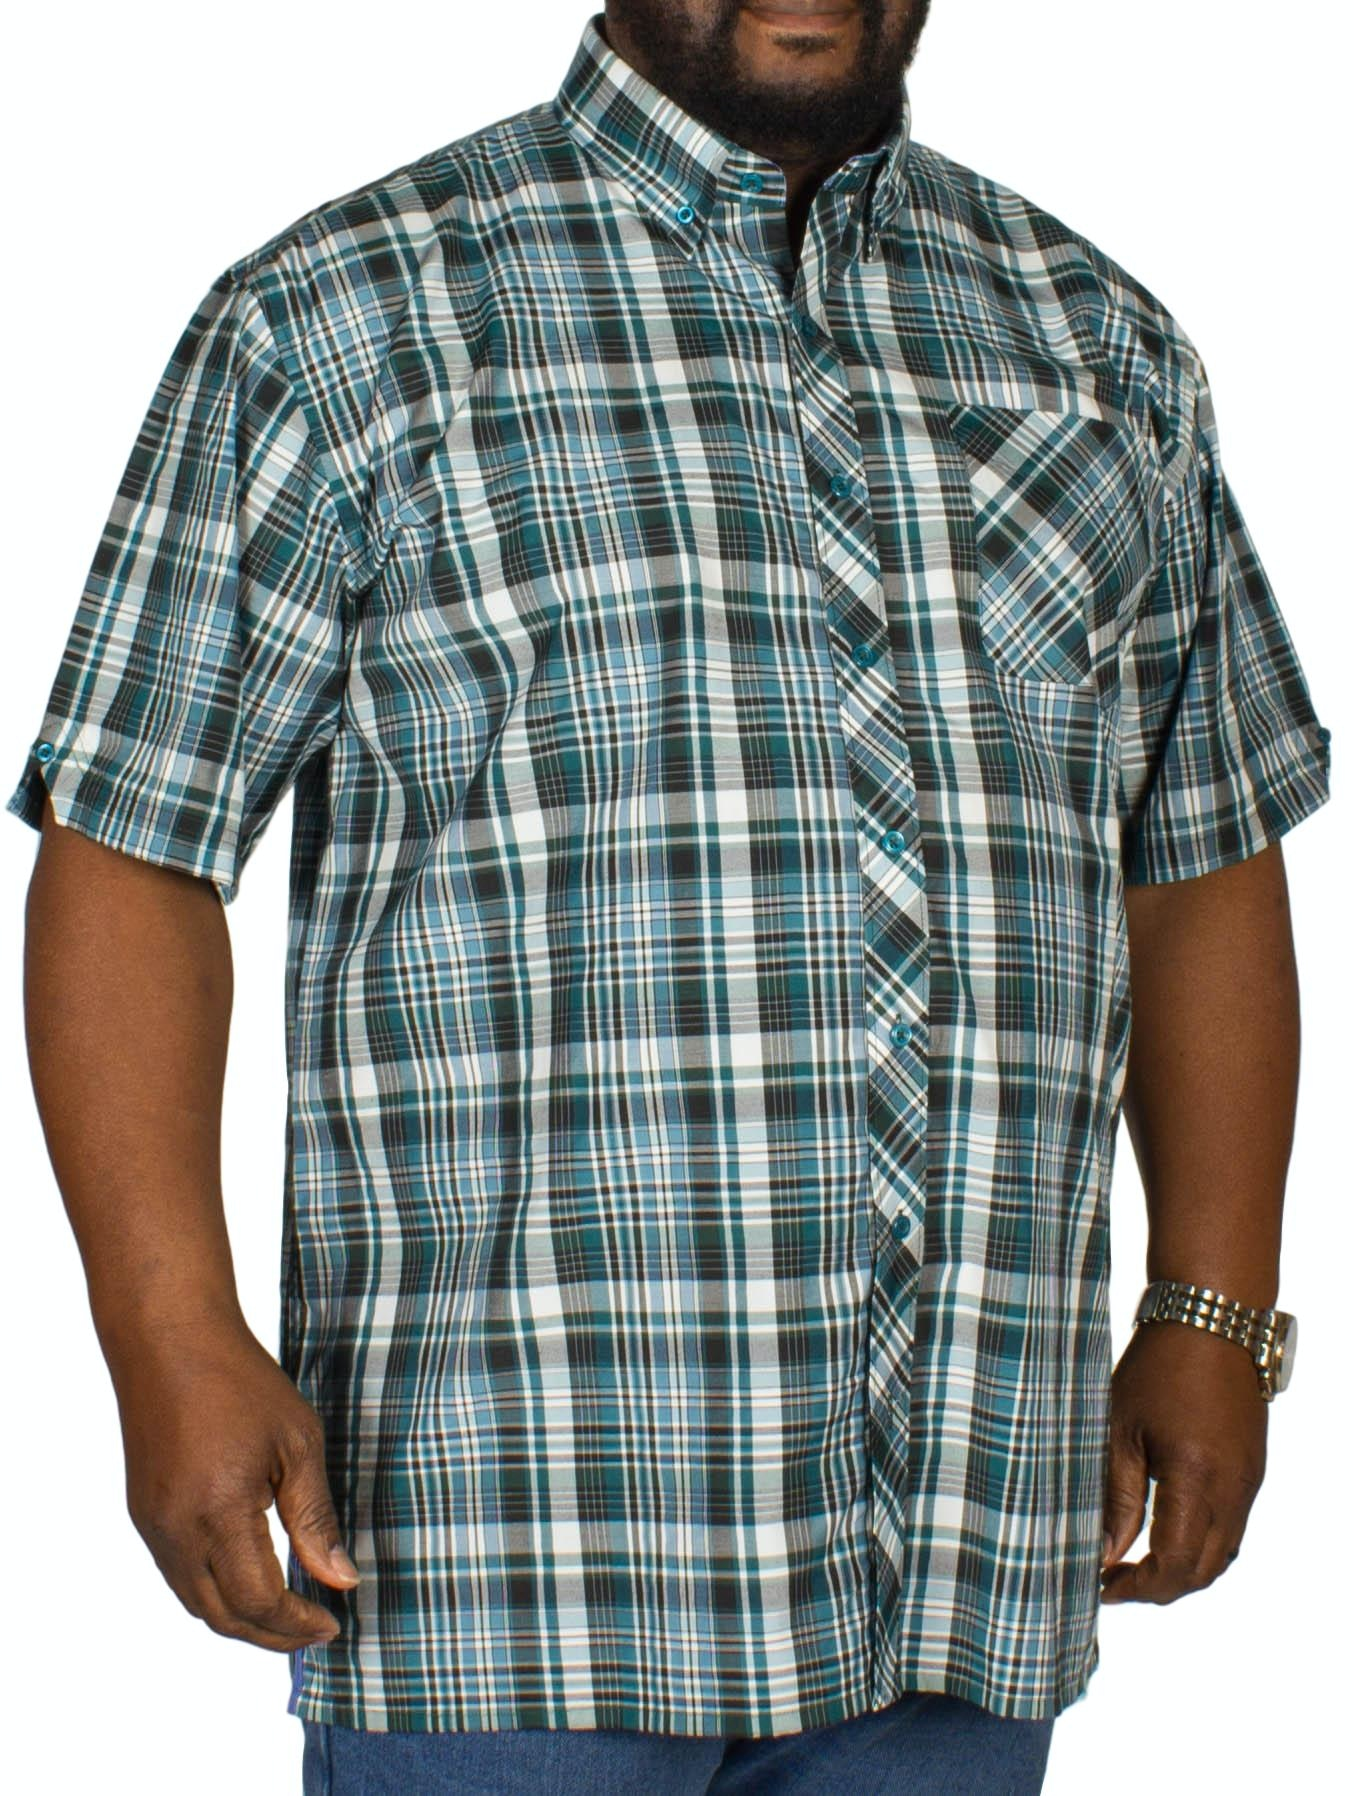 Espionage Check Short Sleeve Shirt Black/Green